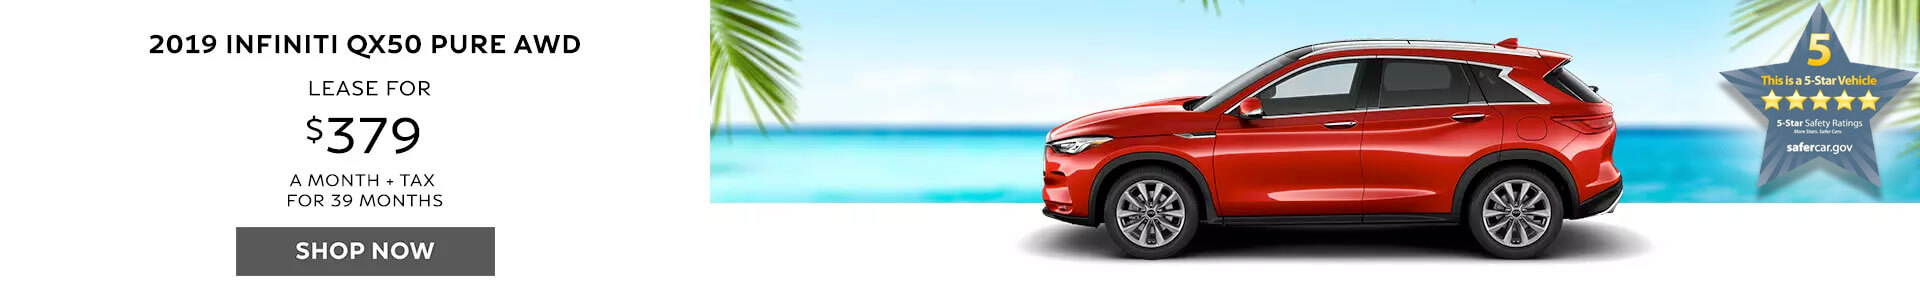 QX50 Lease for $379